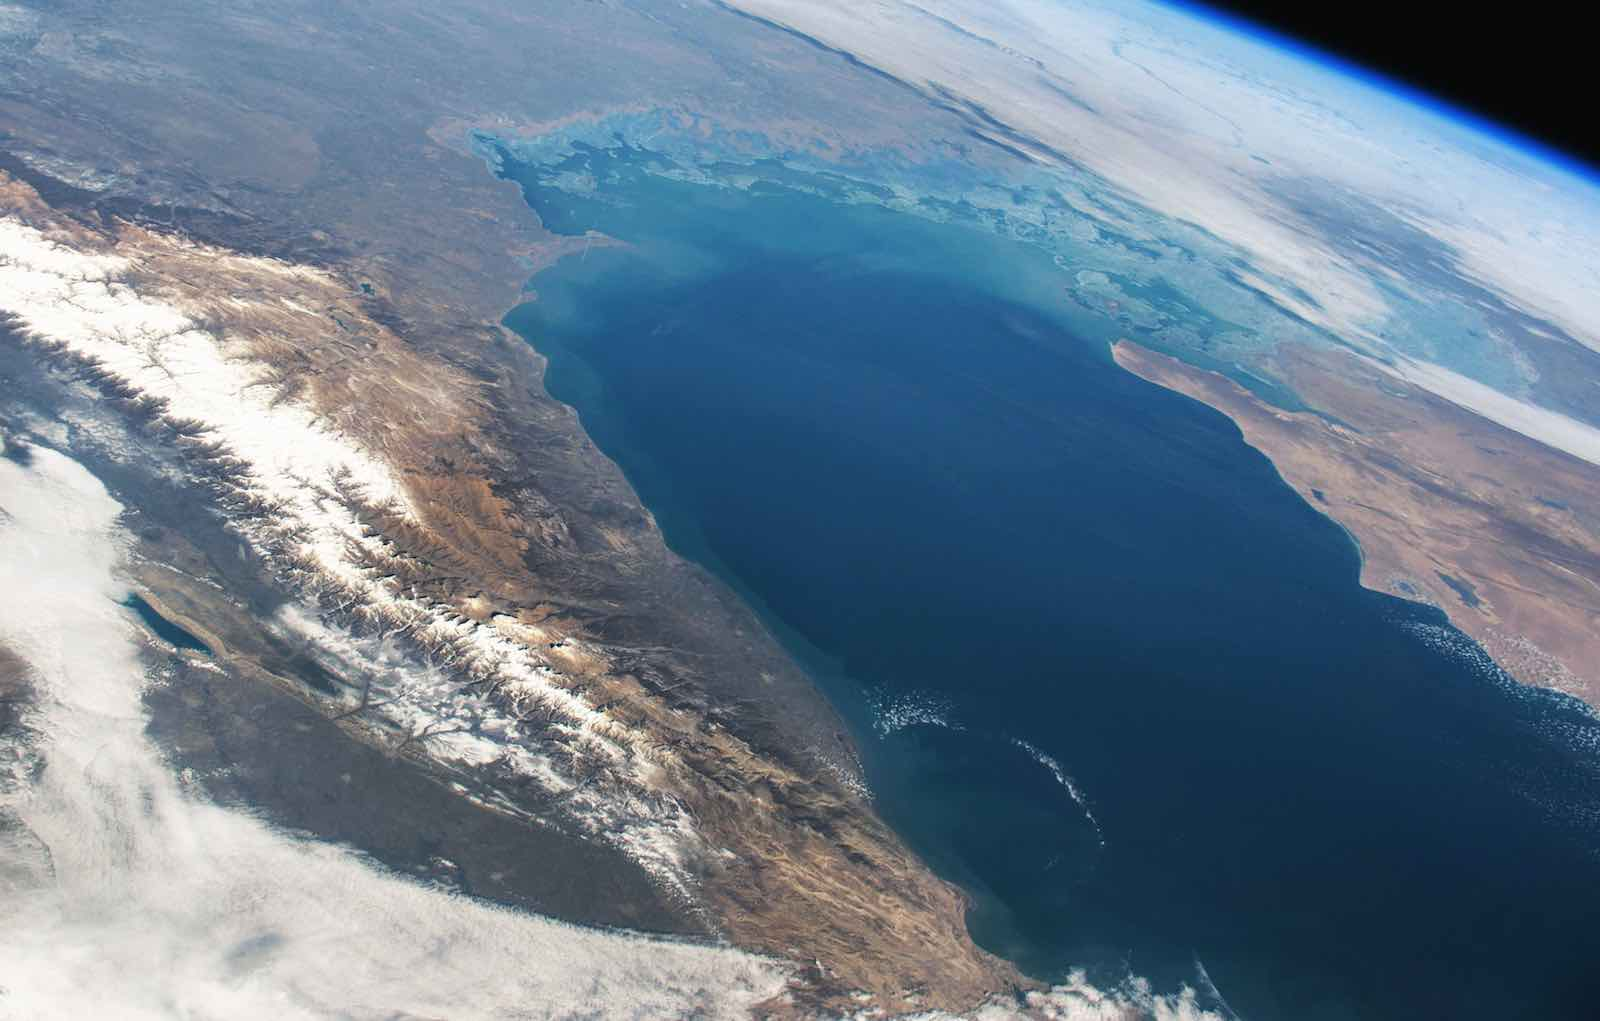 Caspian Sea from space (Photo: NASA via Stuart Rankin/Flickr)